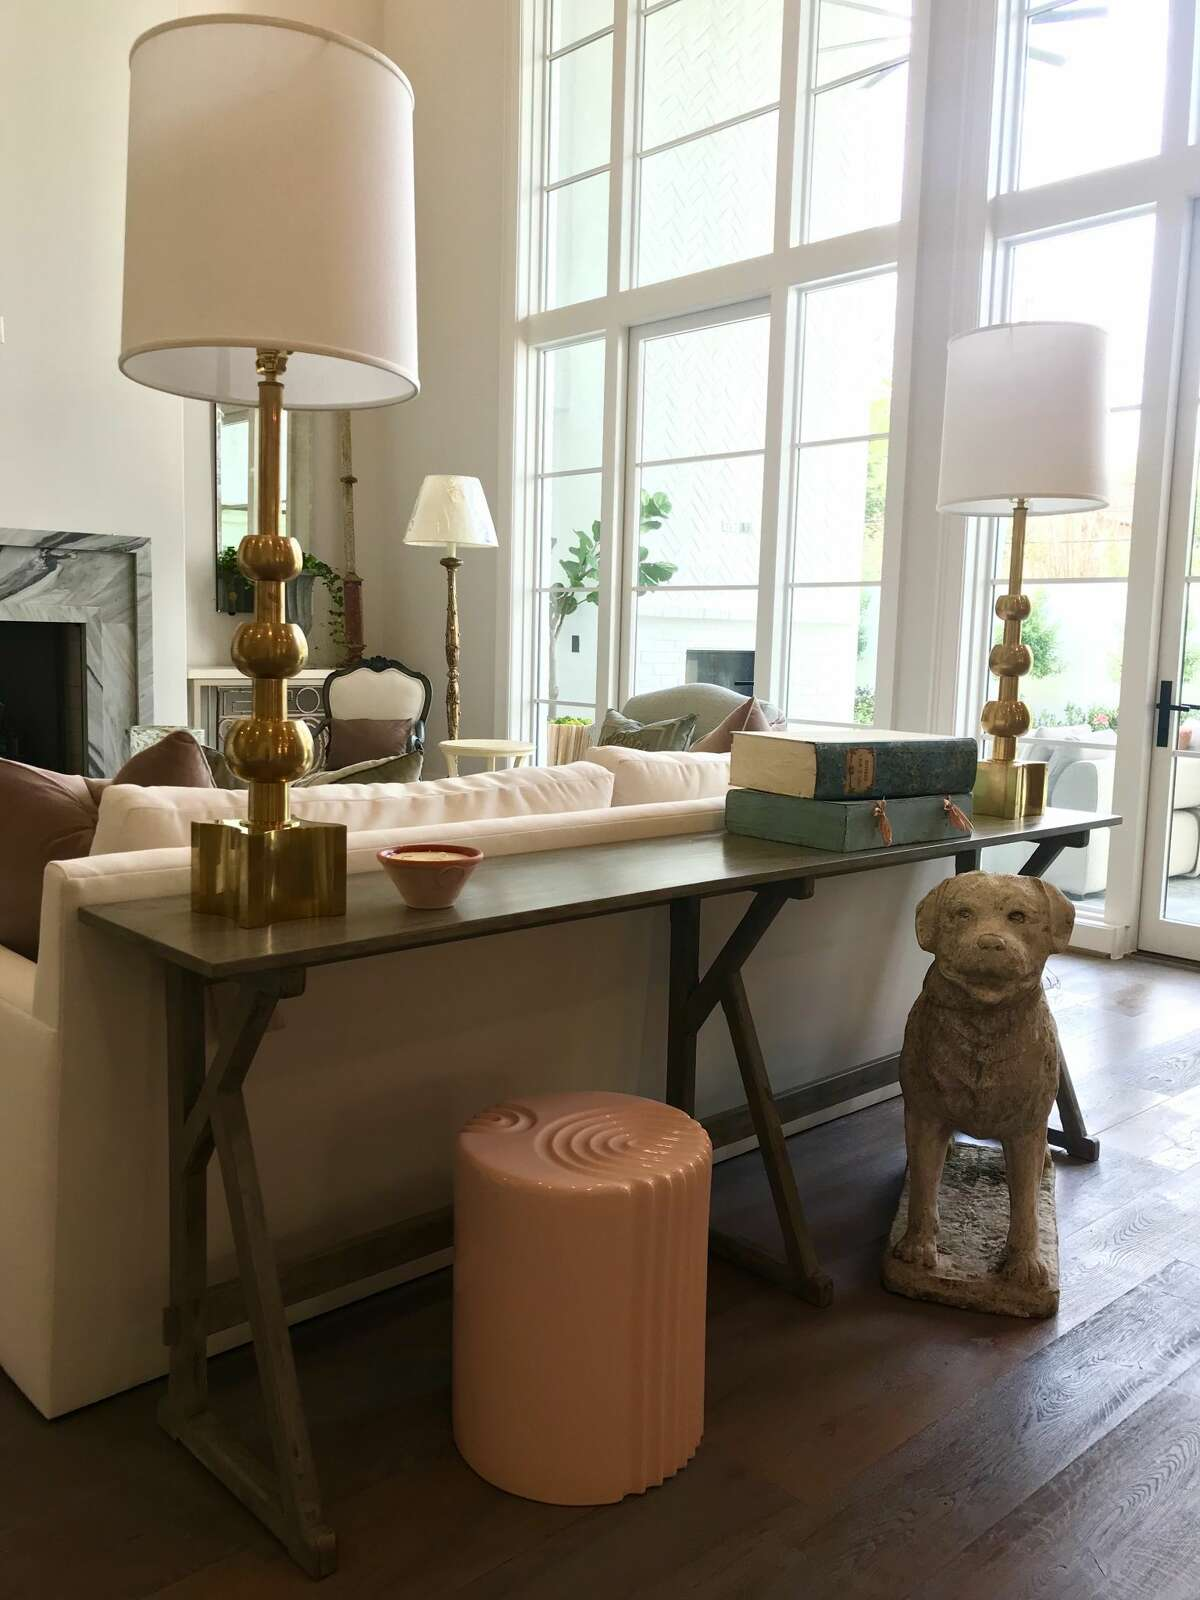 This living room furniture in a spec home will be sold in a silent auction to raise money for Houston PetSet.